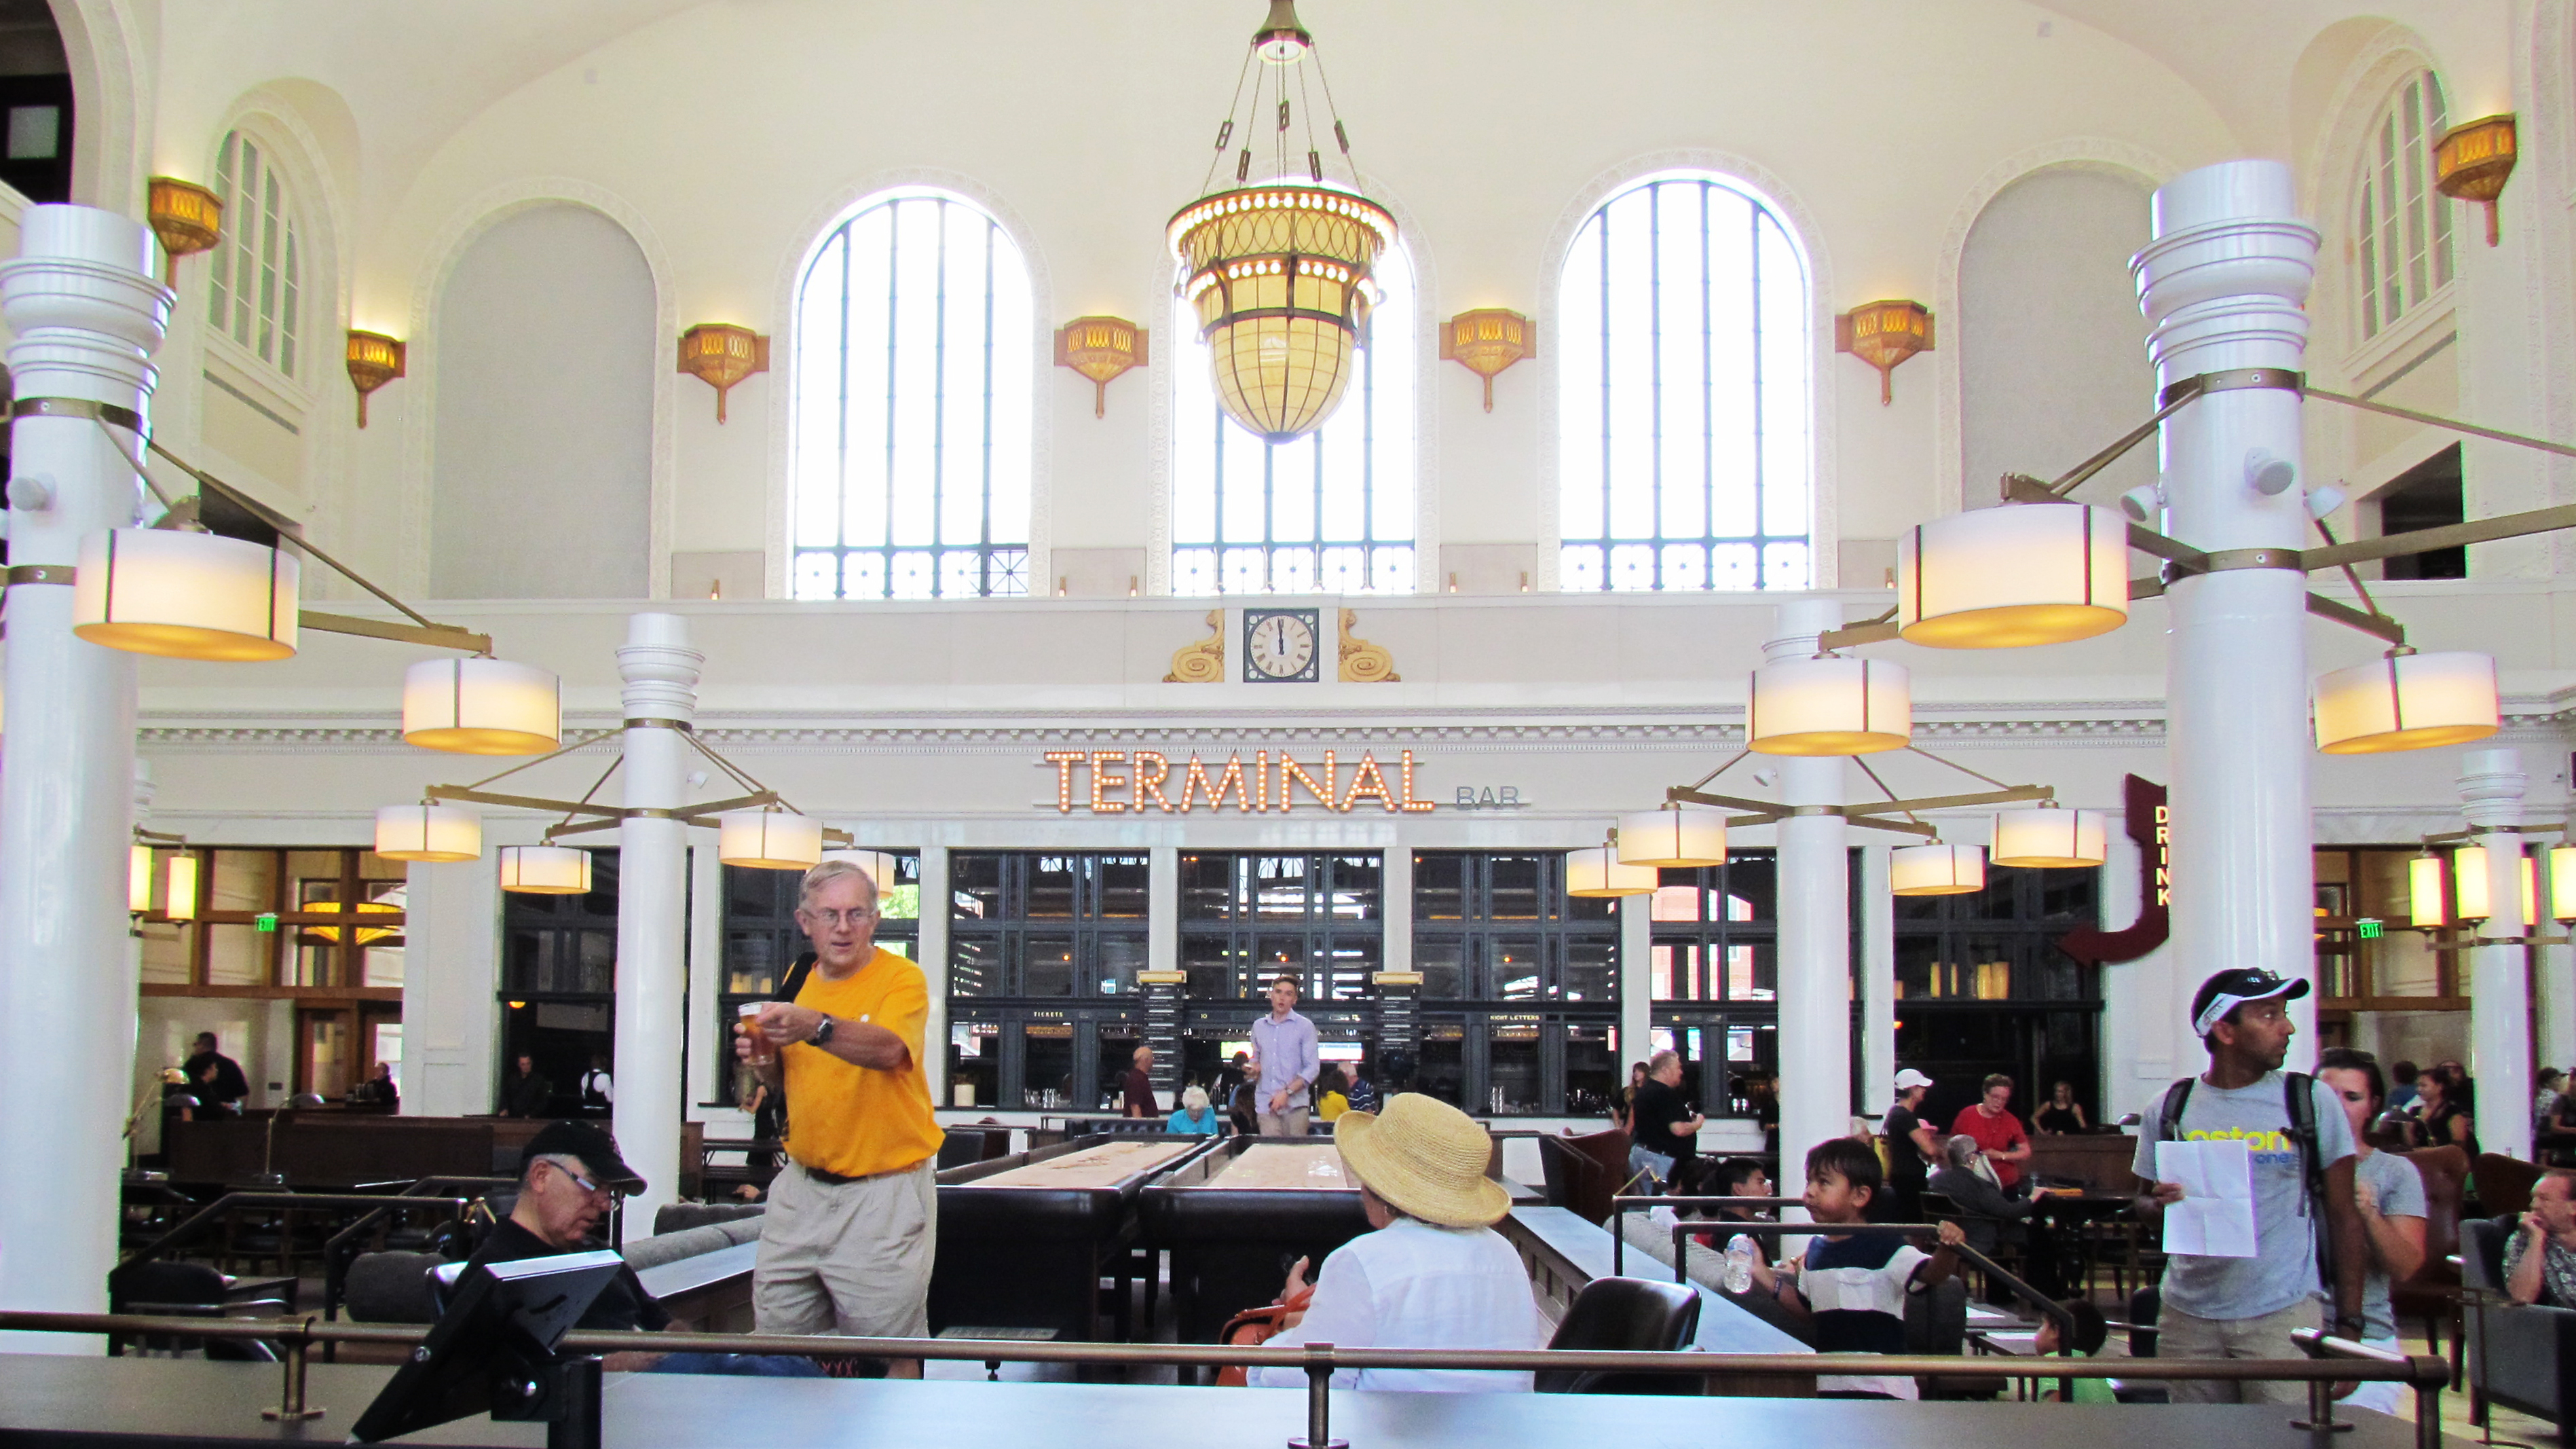 Once-Dilapidated City Train Stations Enjoying A Renaissance